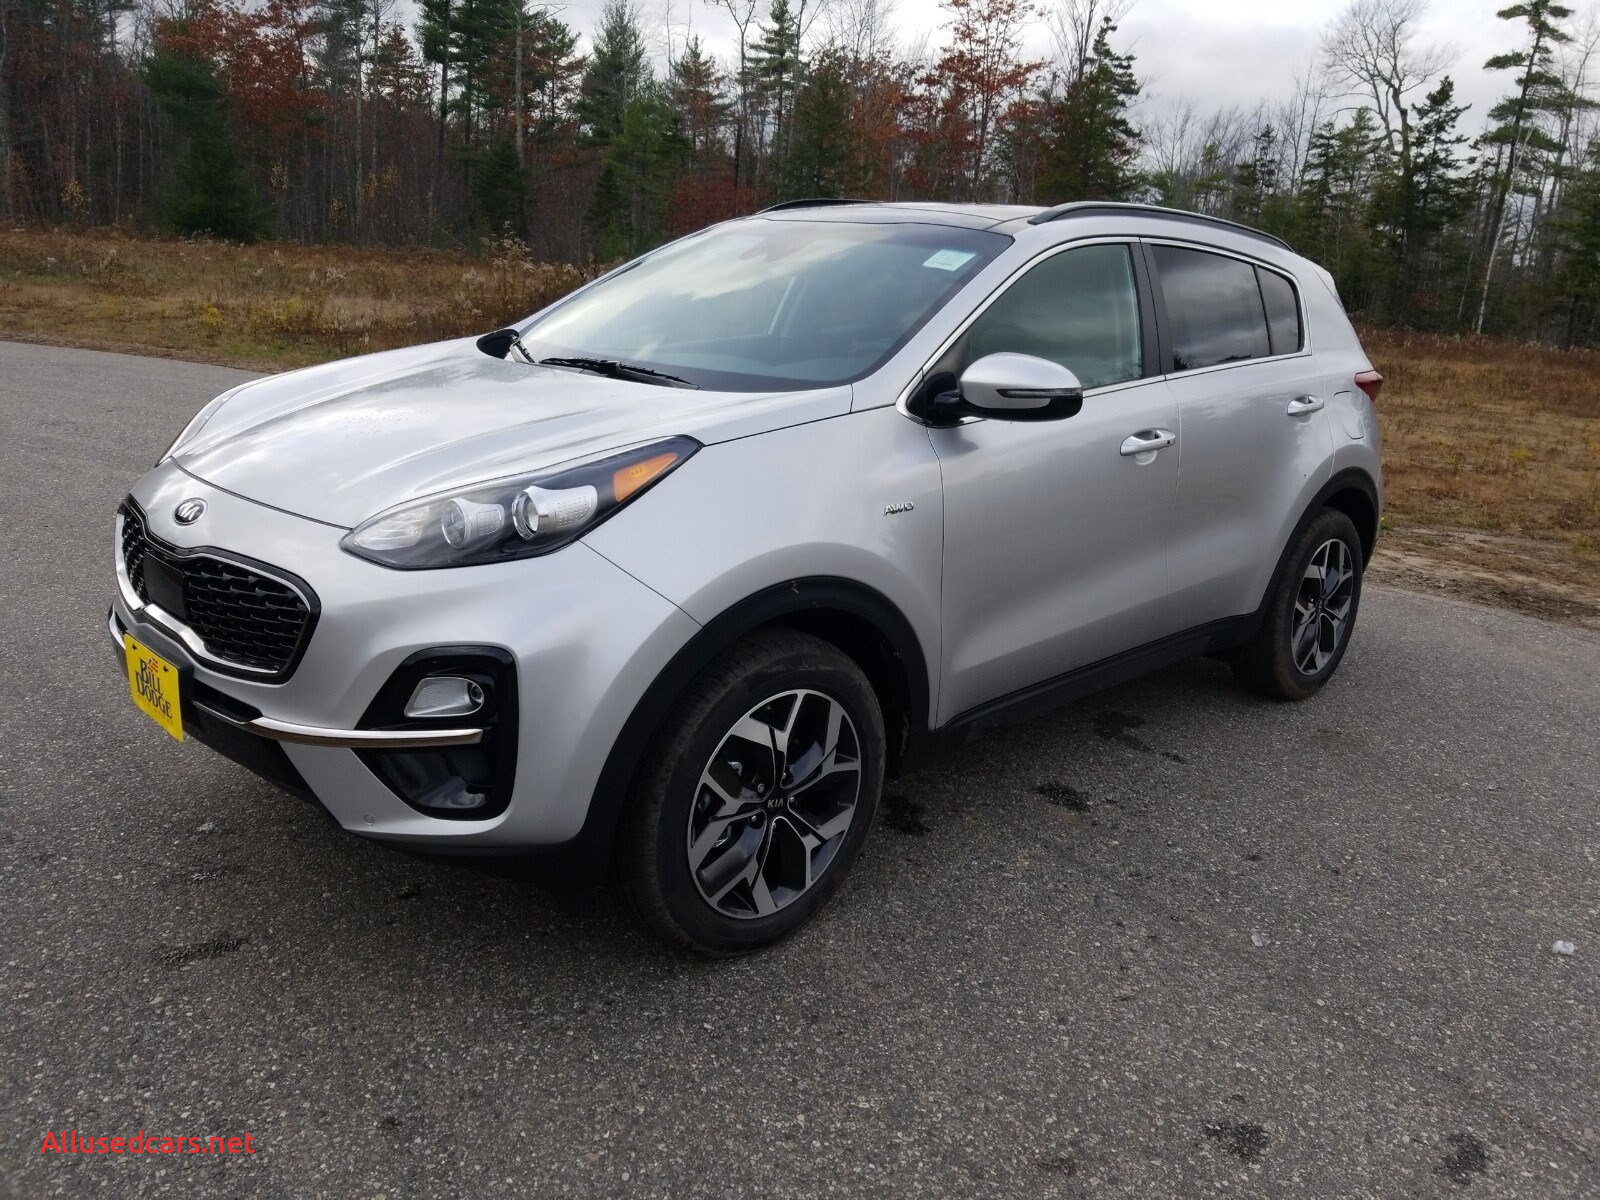 Permalink to Elegant Kia Cars for Sale Near Me